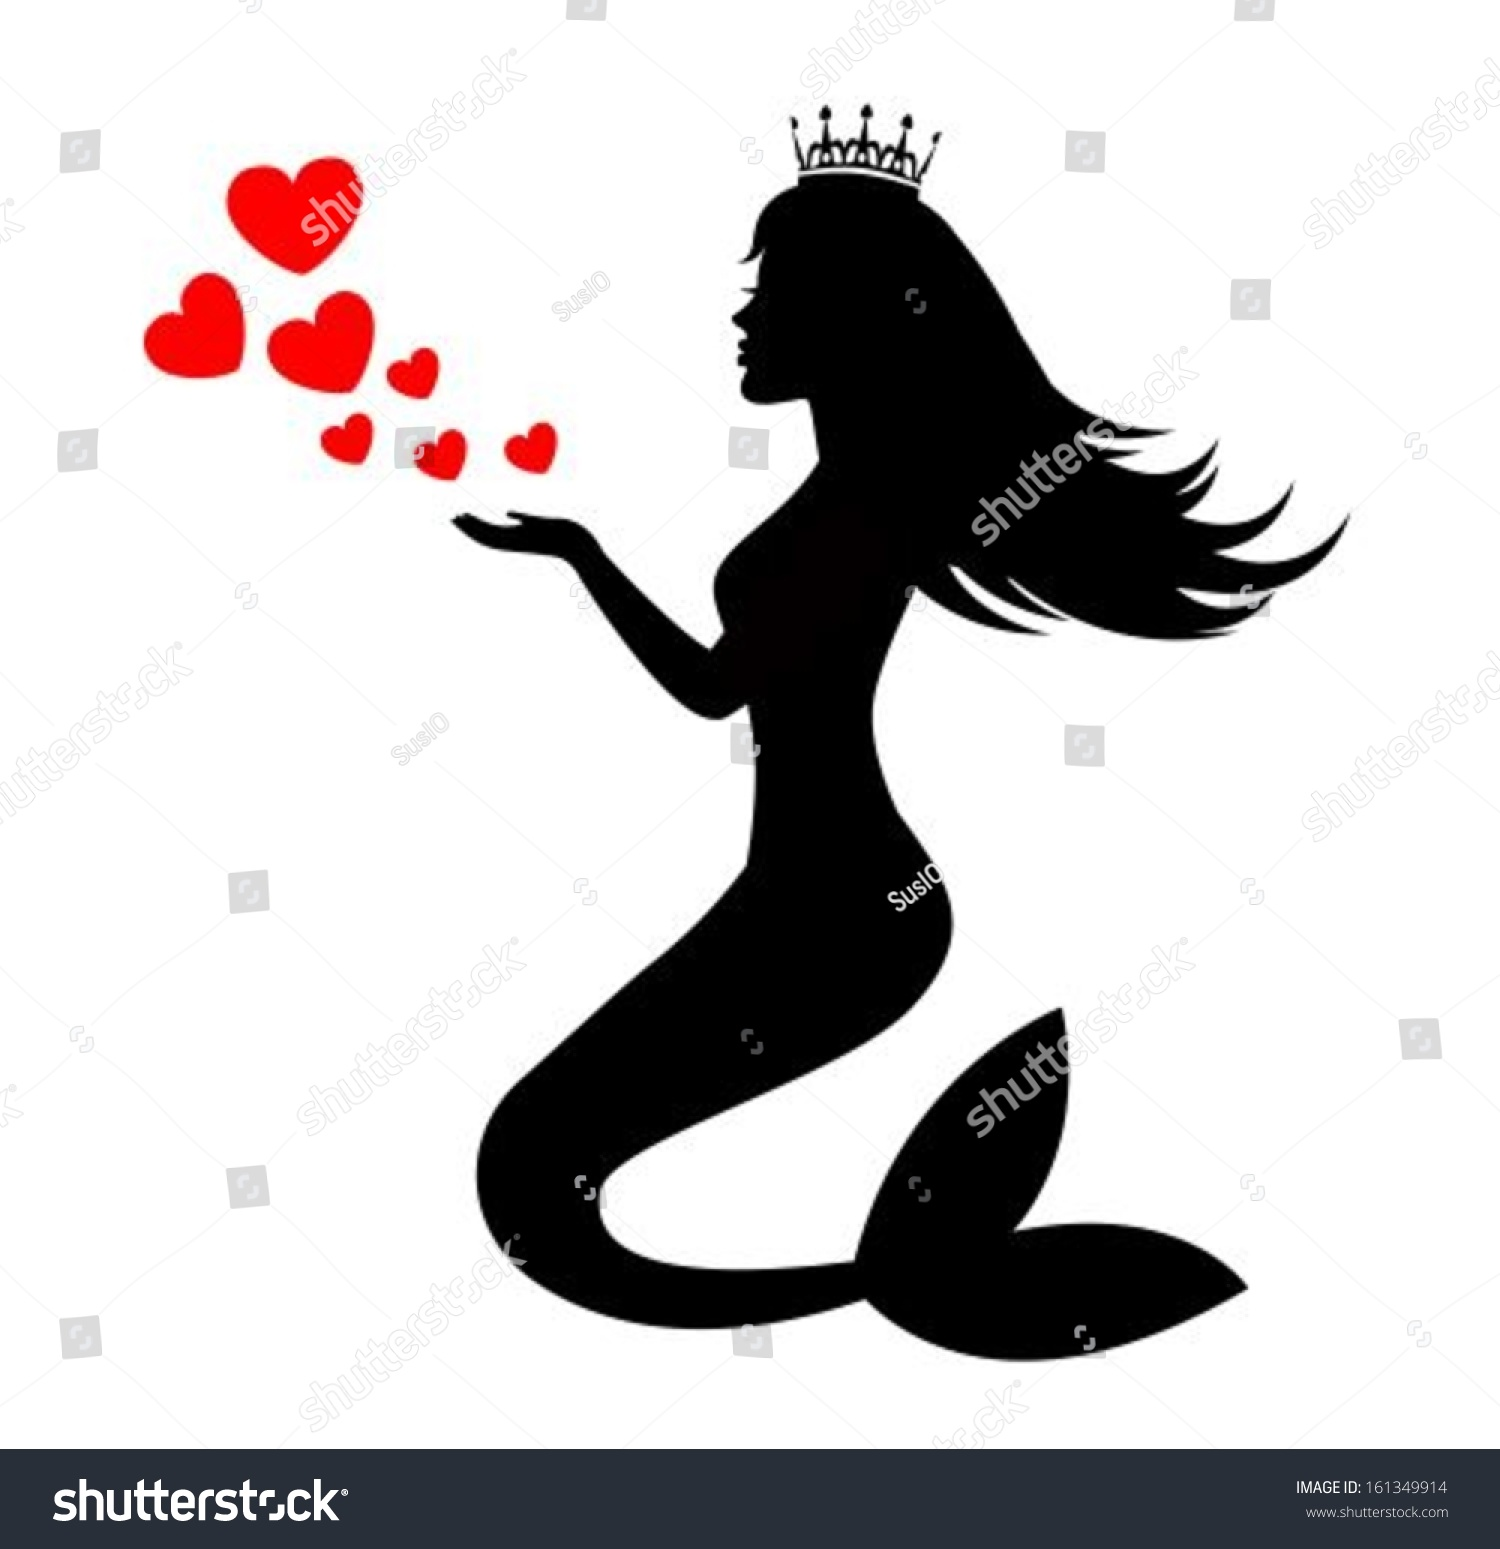 Hand painted mermaid watercolor vector silhouette stock vector -  Vectors Illustrations Footage Music Mermaid Silhouette Of A Crown With Hearts On A White Background